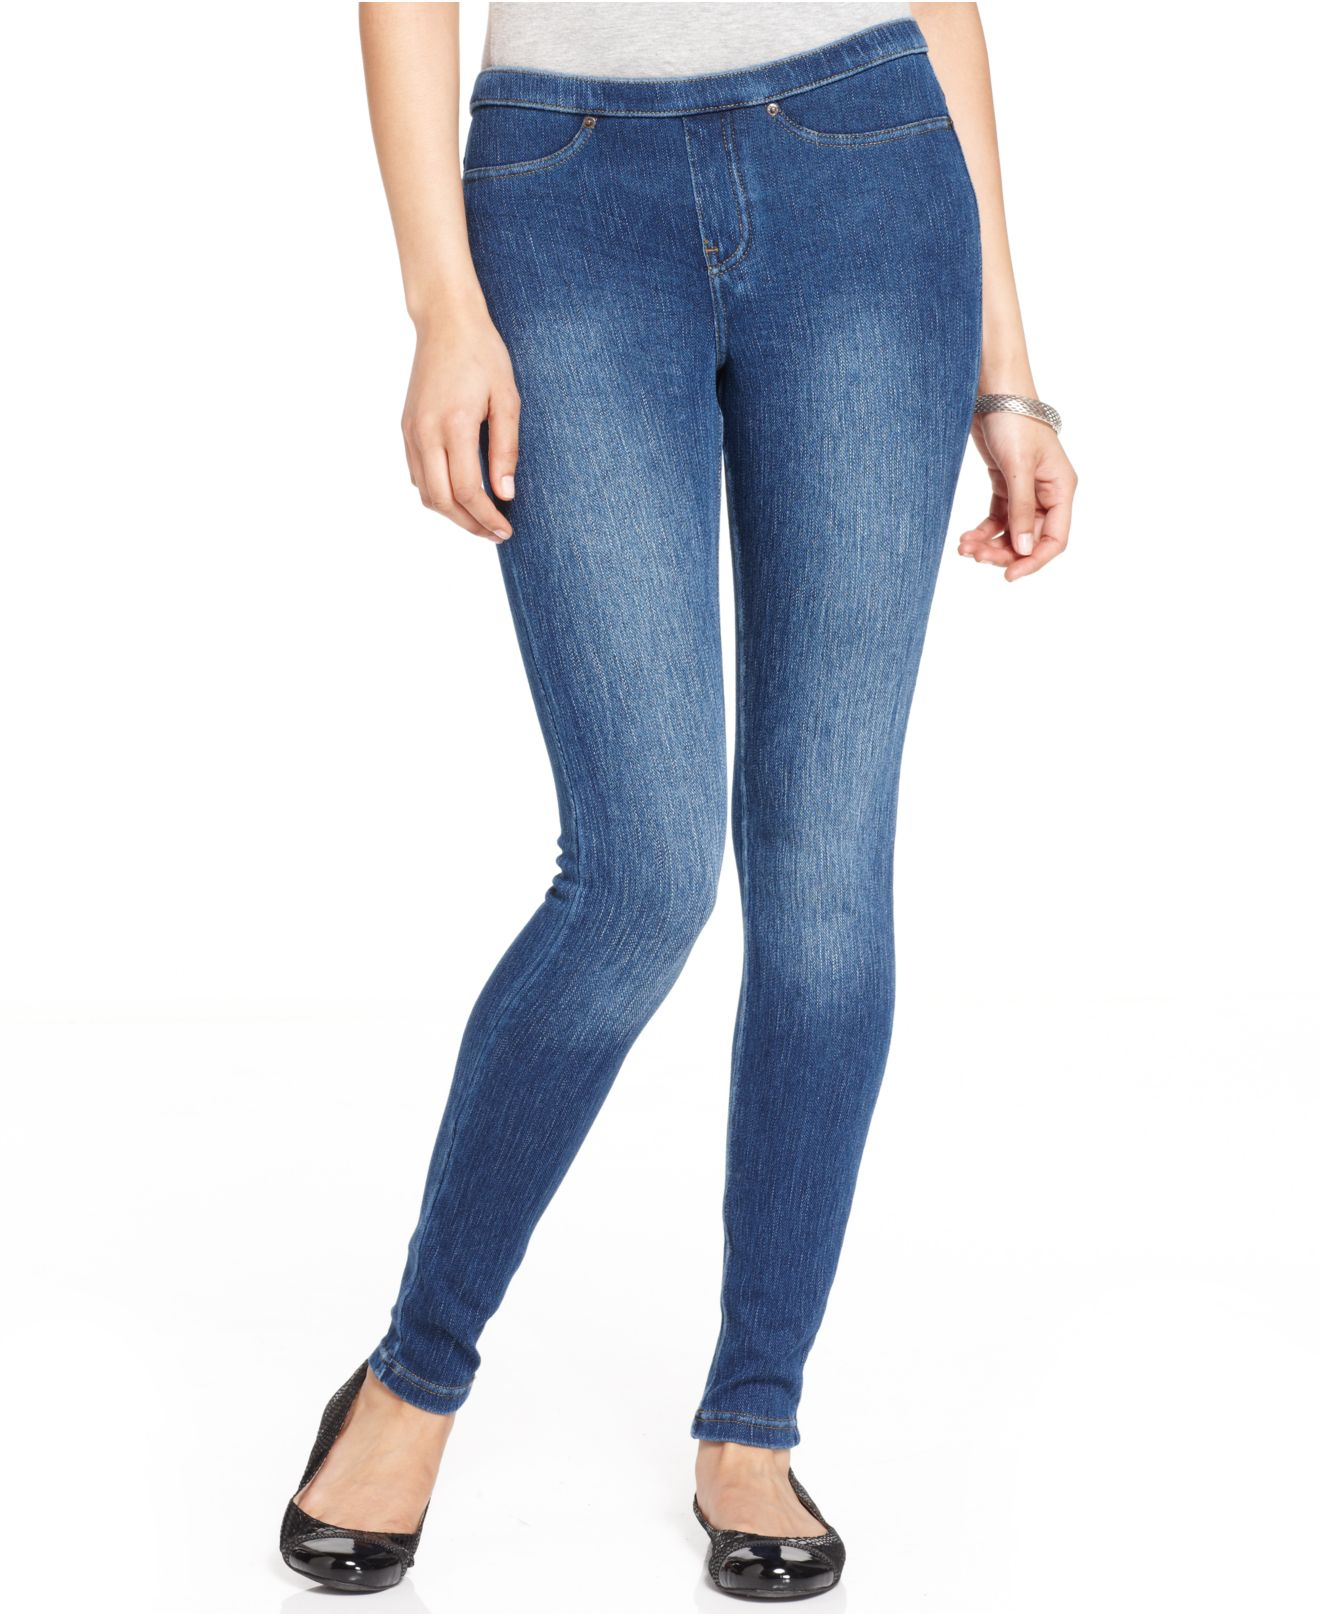 7fd2b61228c71 Hue original denim bootcut leggings – Super Jeans in dieser Saison